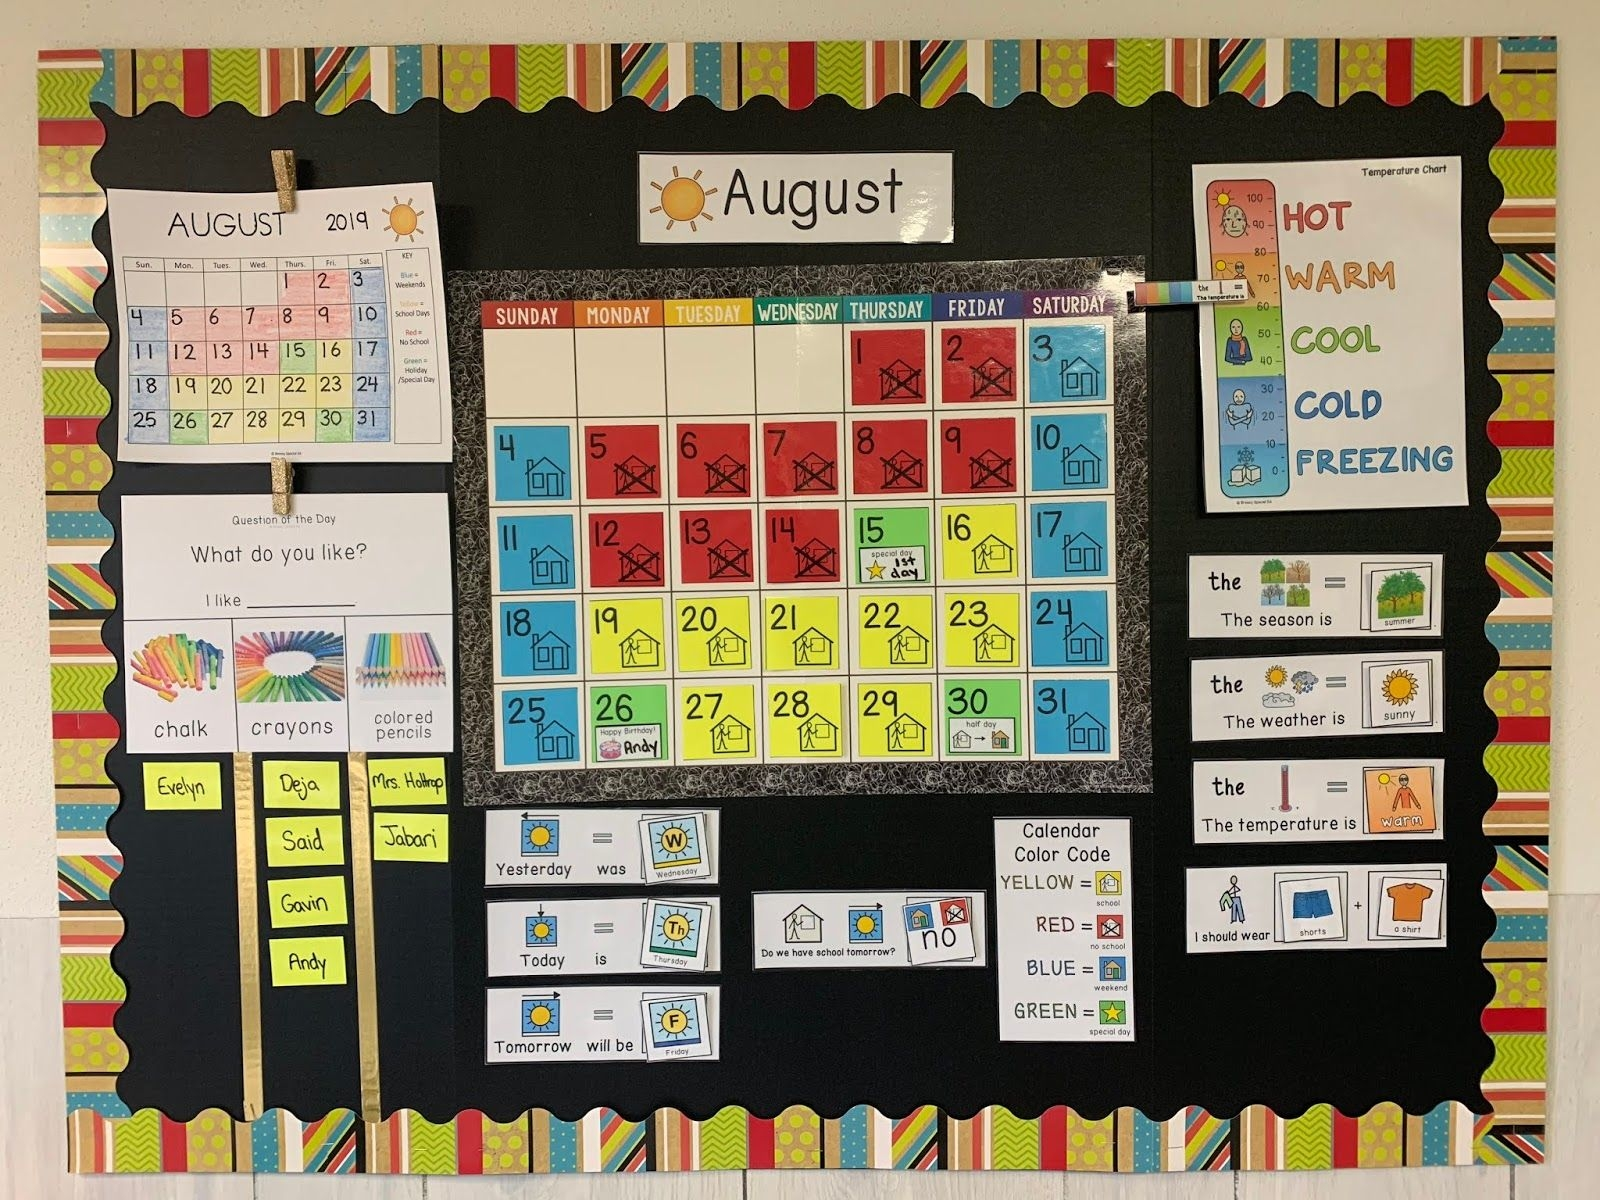 Color Coded Calendar Visuals - Breezy Special Ed